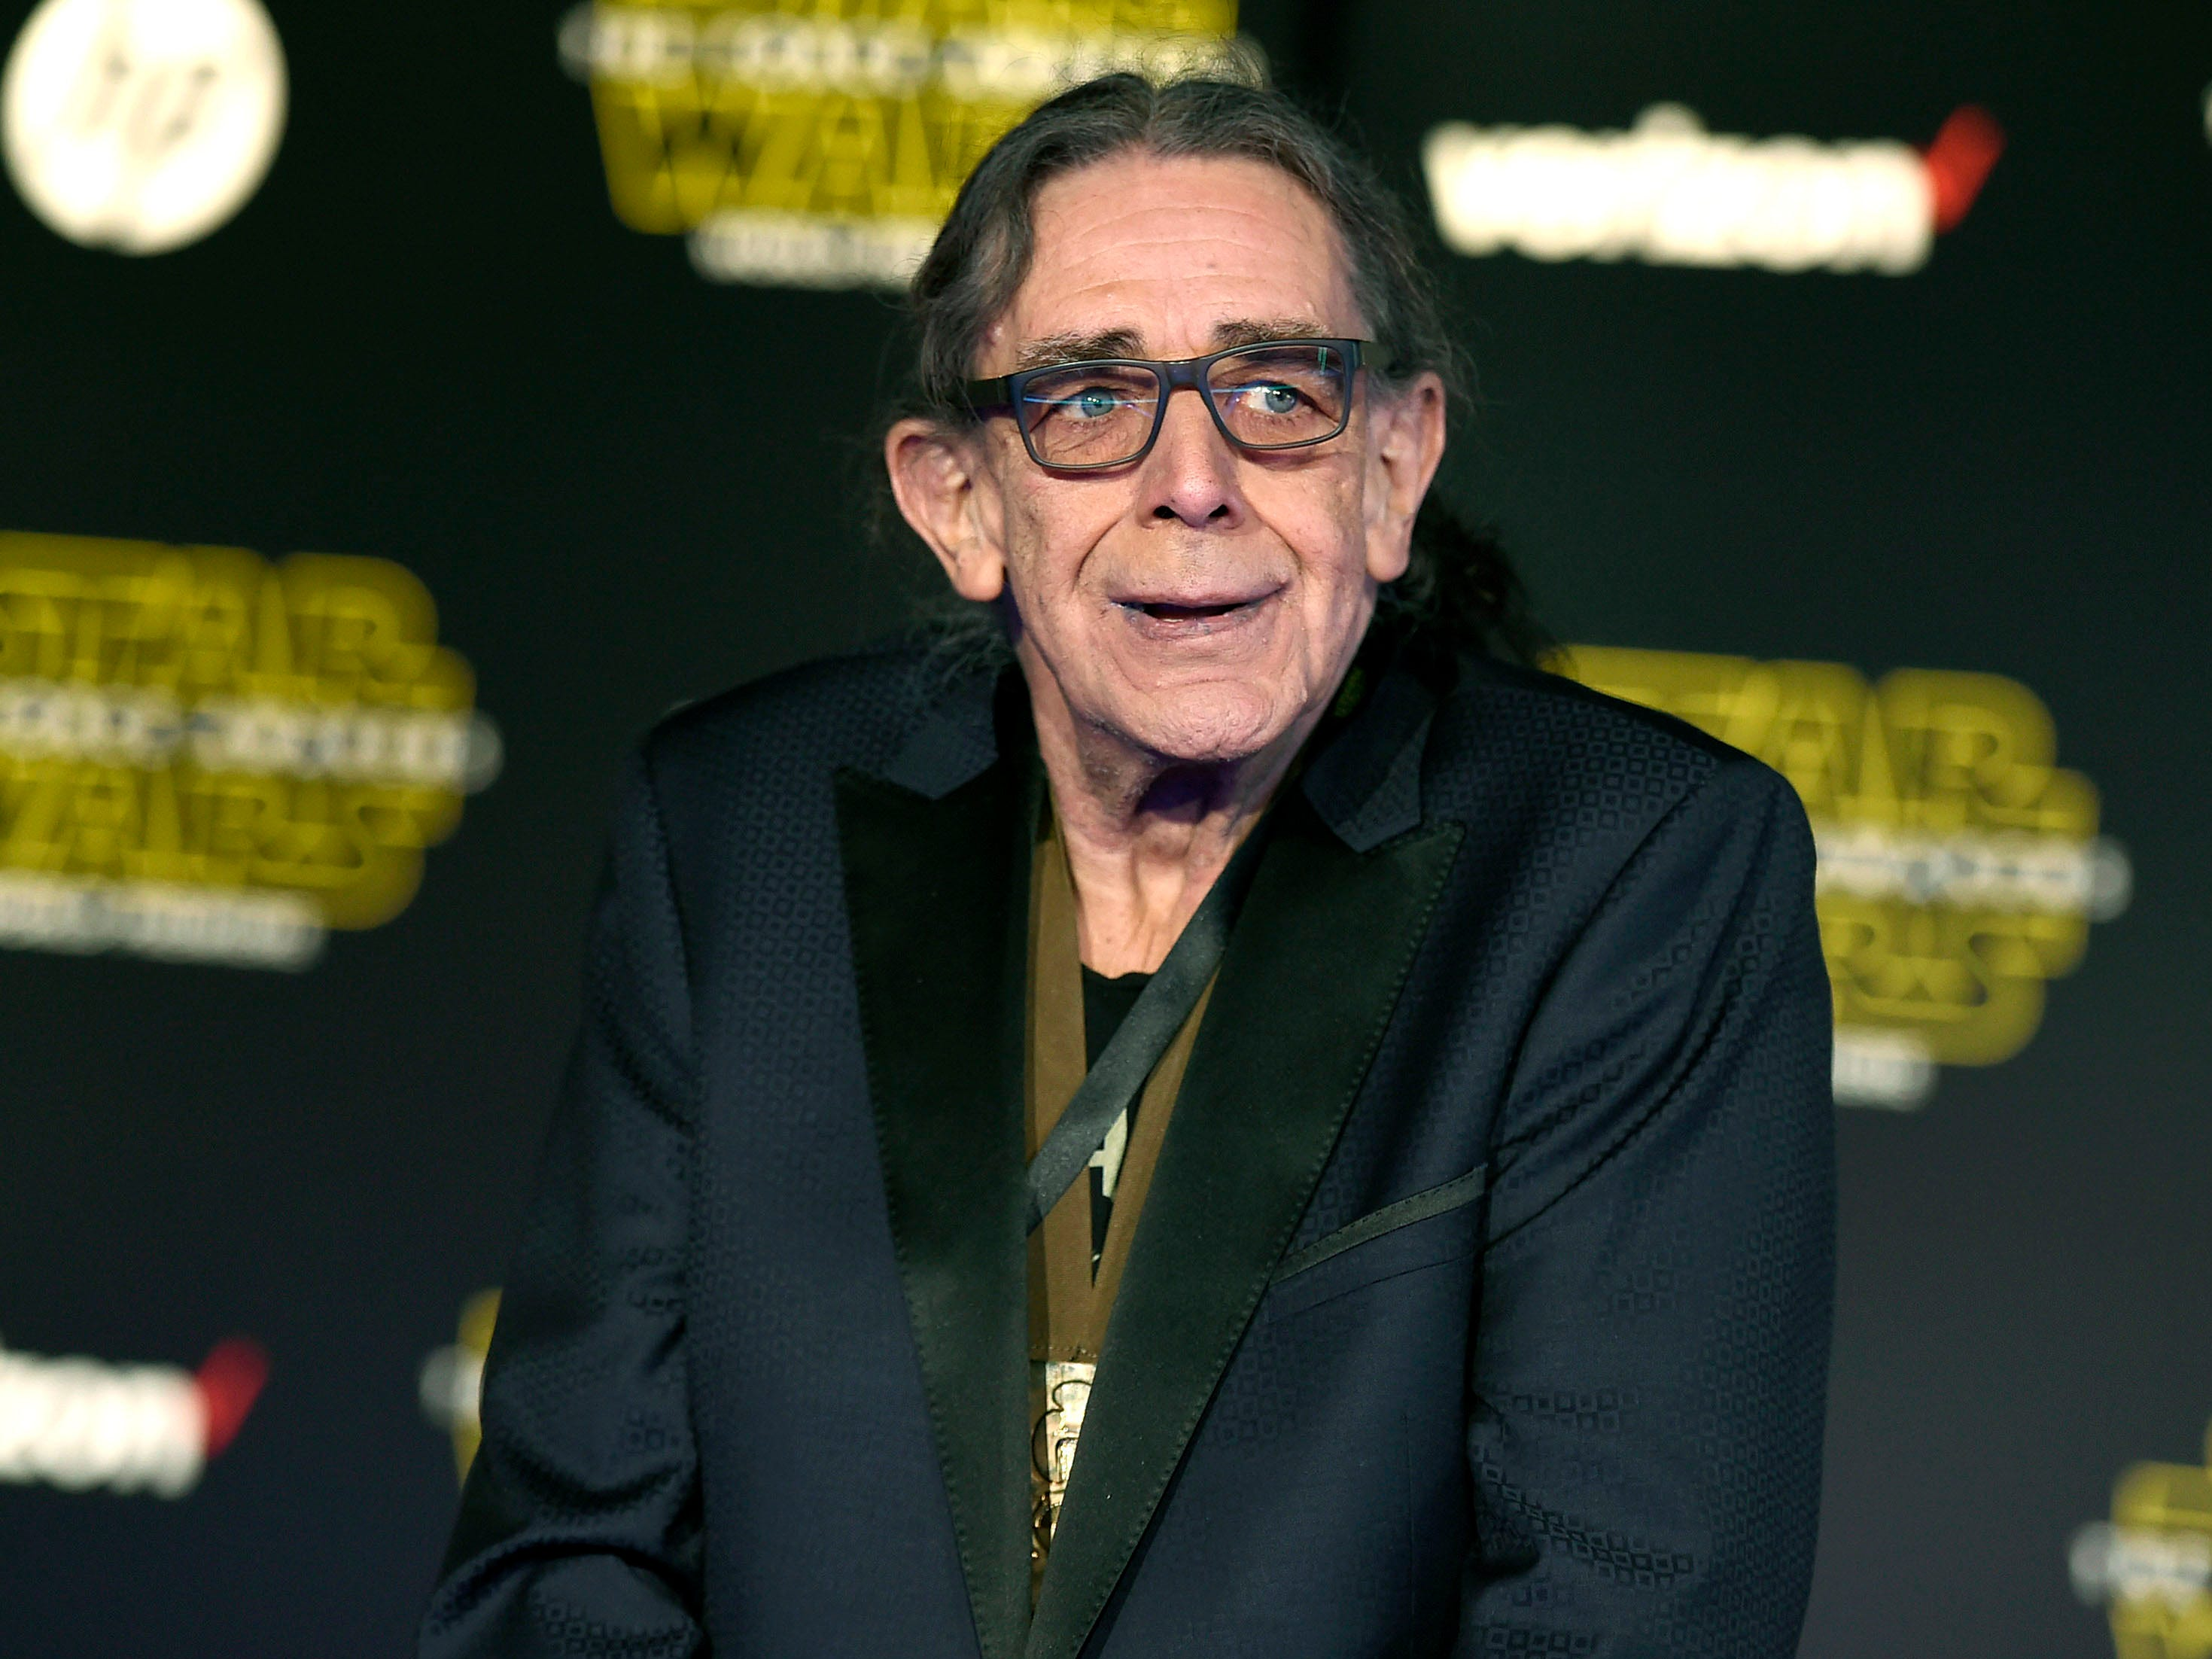 """In this Dec. 14, 2015, file photo, Peter Mayhew arrives at the world premiere of """"Star Wars: The Force Awakens"""" in Los Angeles. Mayhew, who played the rugged, beloved and furry Wookiee Chewbacca in the """"Star Wars"""" films, has died. Mayhew died at his home in north Texas on Tuesday, April 30, 2019 according to a family statement. He was 74. No cause was given."""